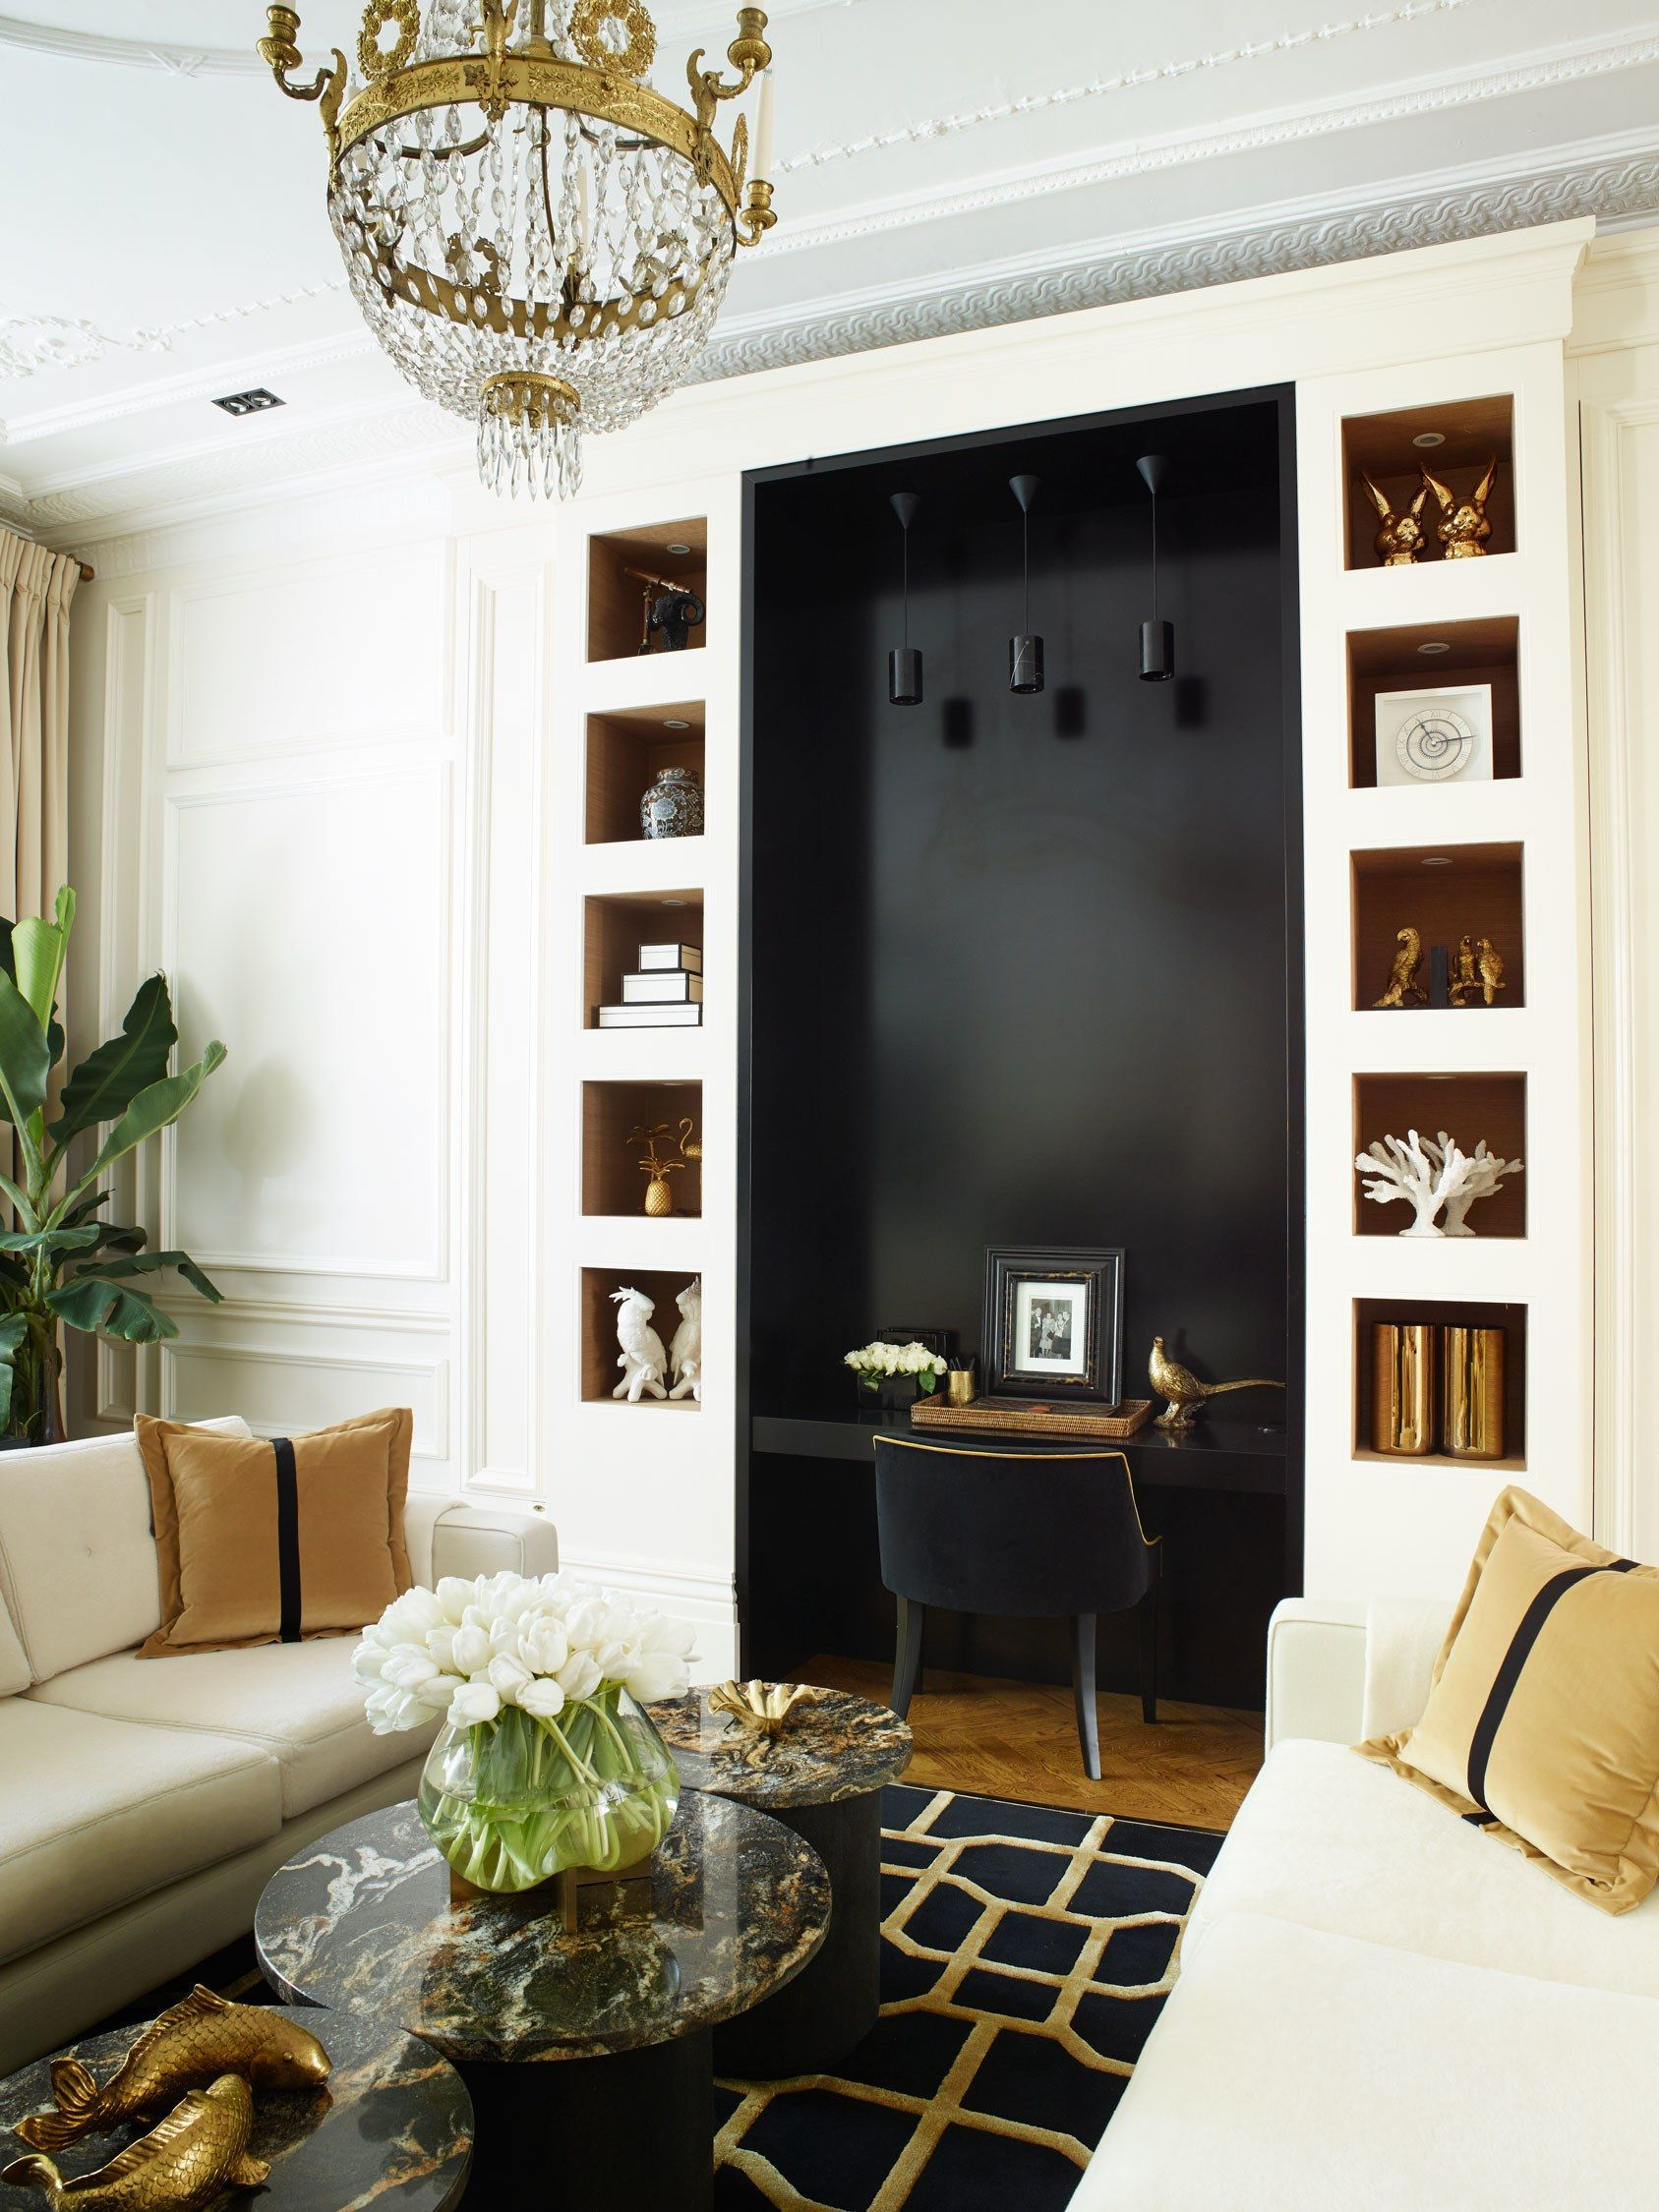 A Classic London Townhouse Apartment Gets A Glamorous Art Deco Inspired Makeover Art Deco Living Room Townhouse Apartments Interior Deco